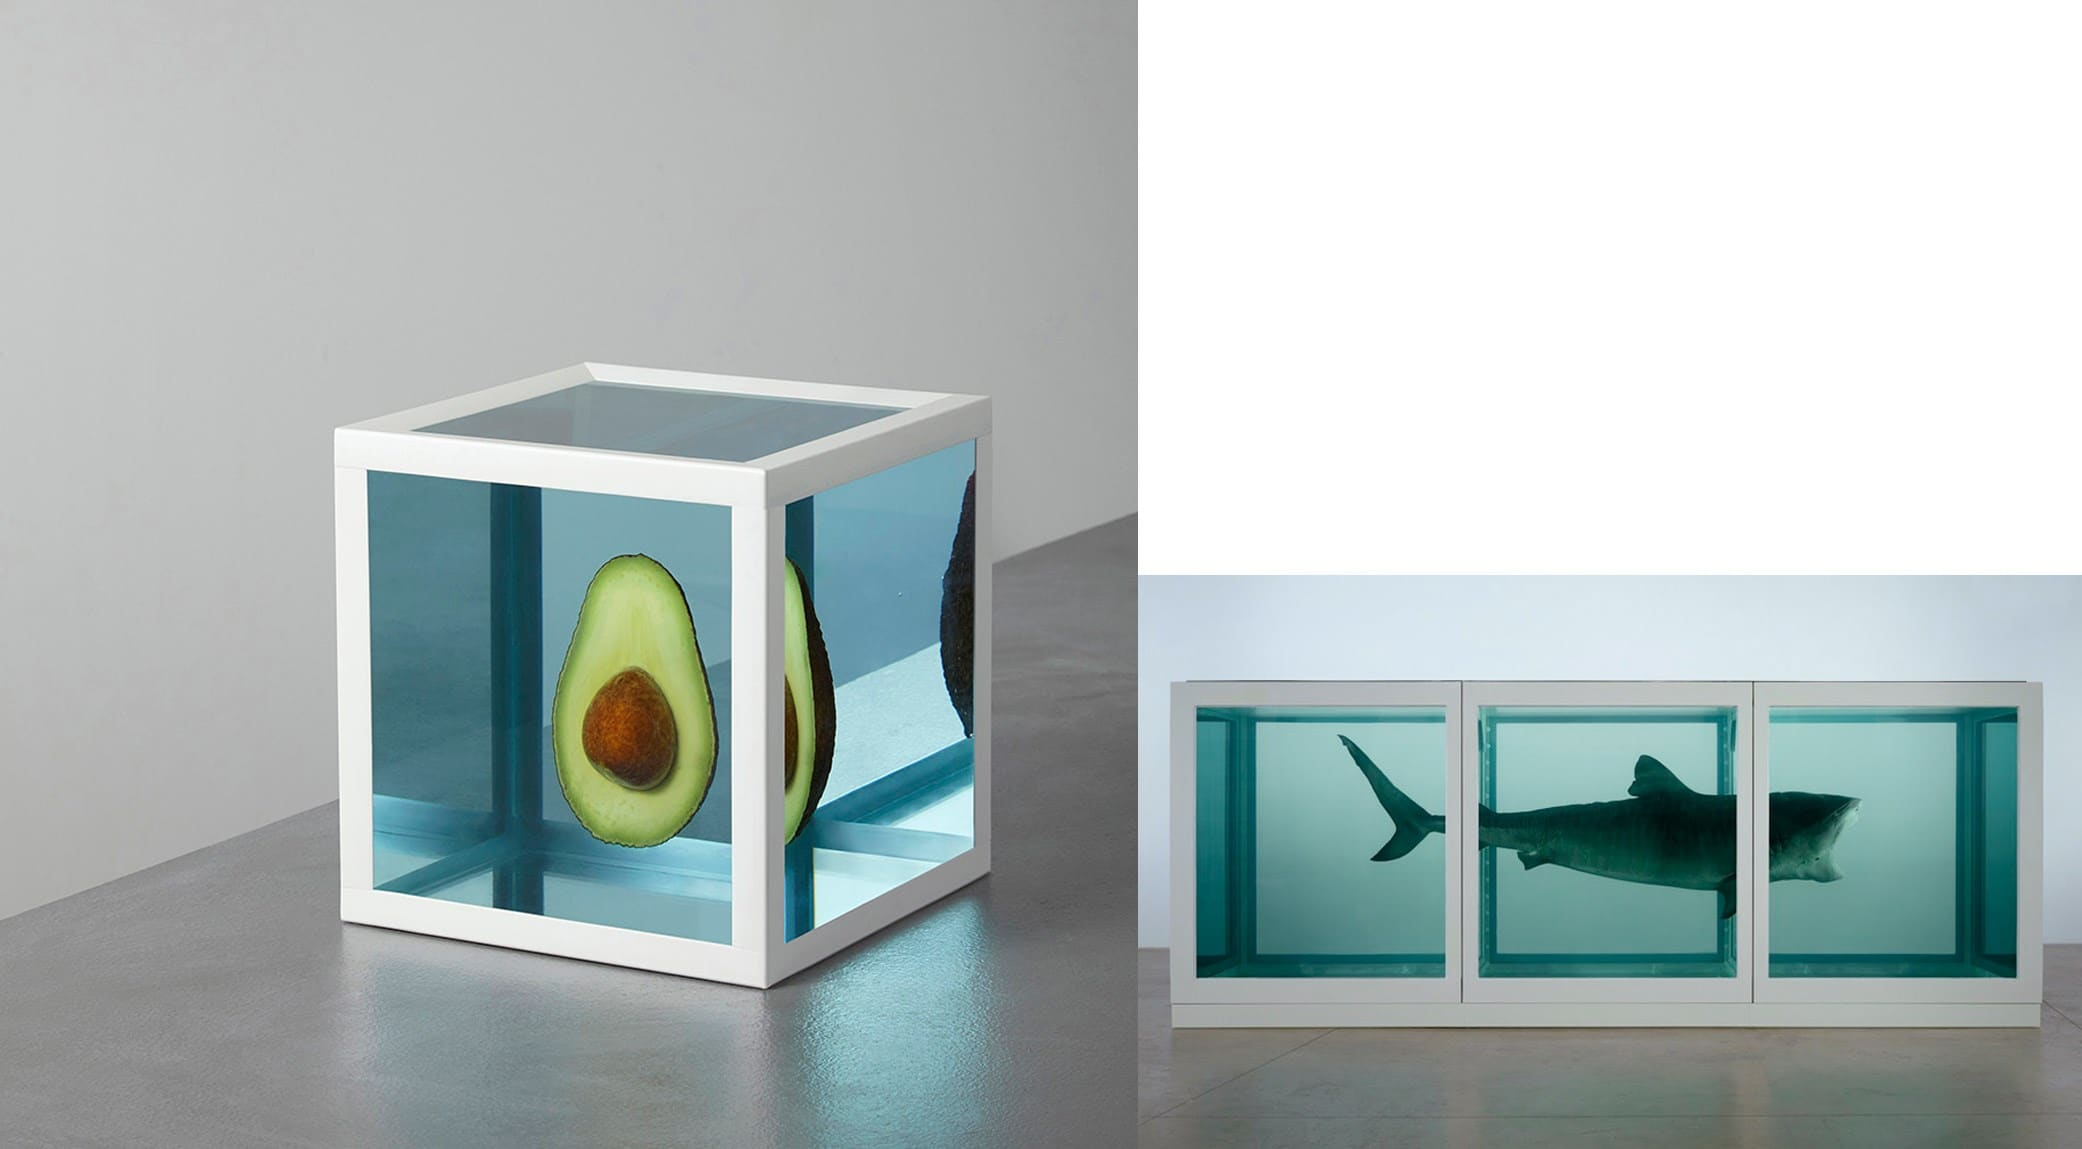 Kyle Bean and Damien Hirst